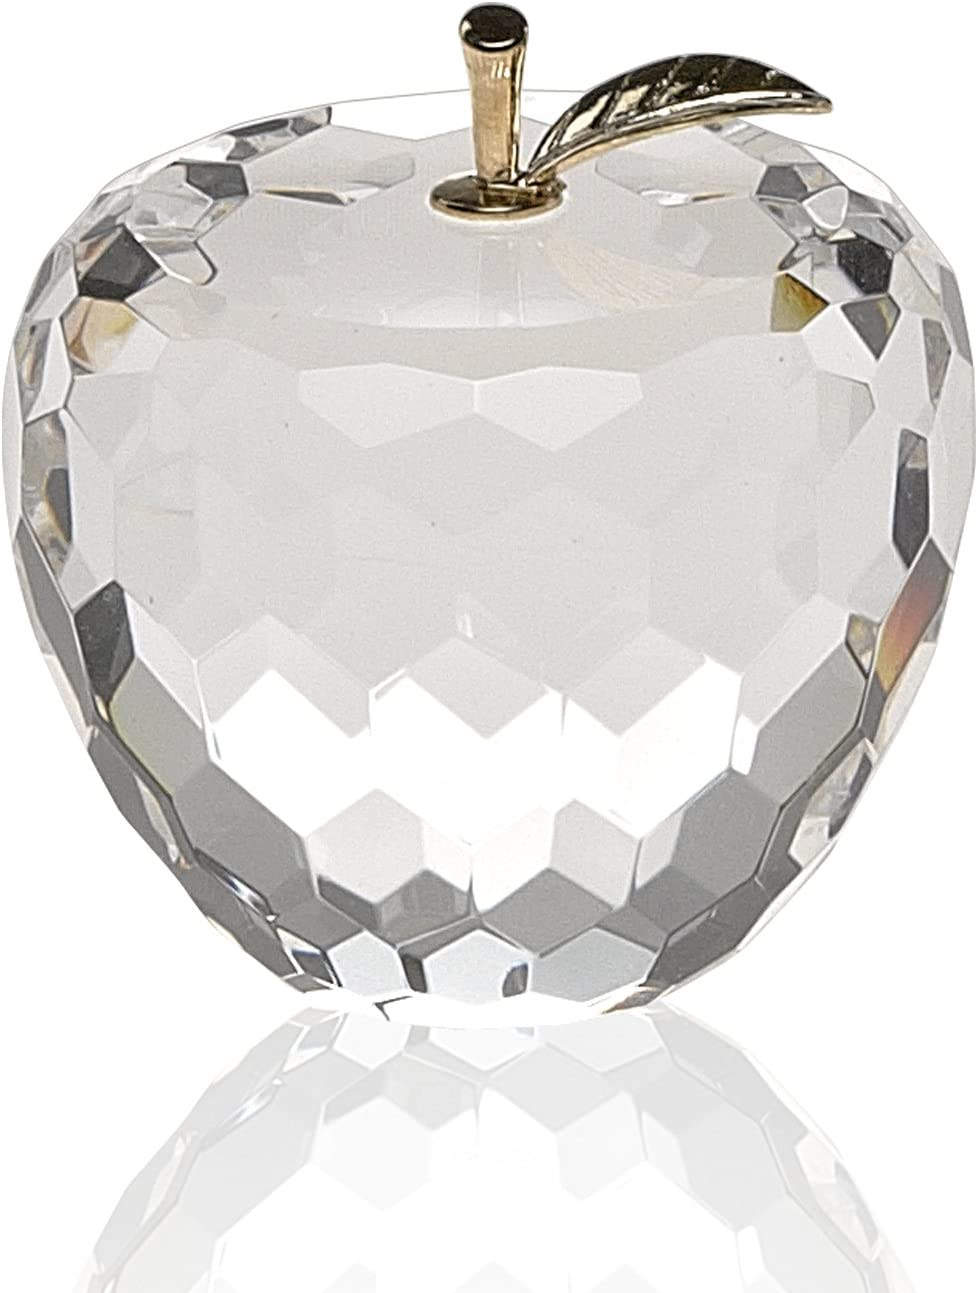 Badash Faceted Crystal Apple Paperweight H2.5 with Gold Stem